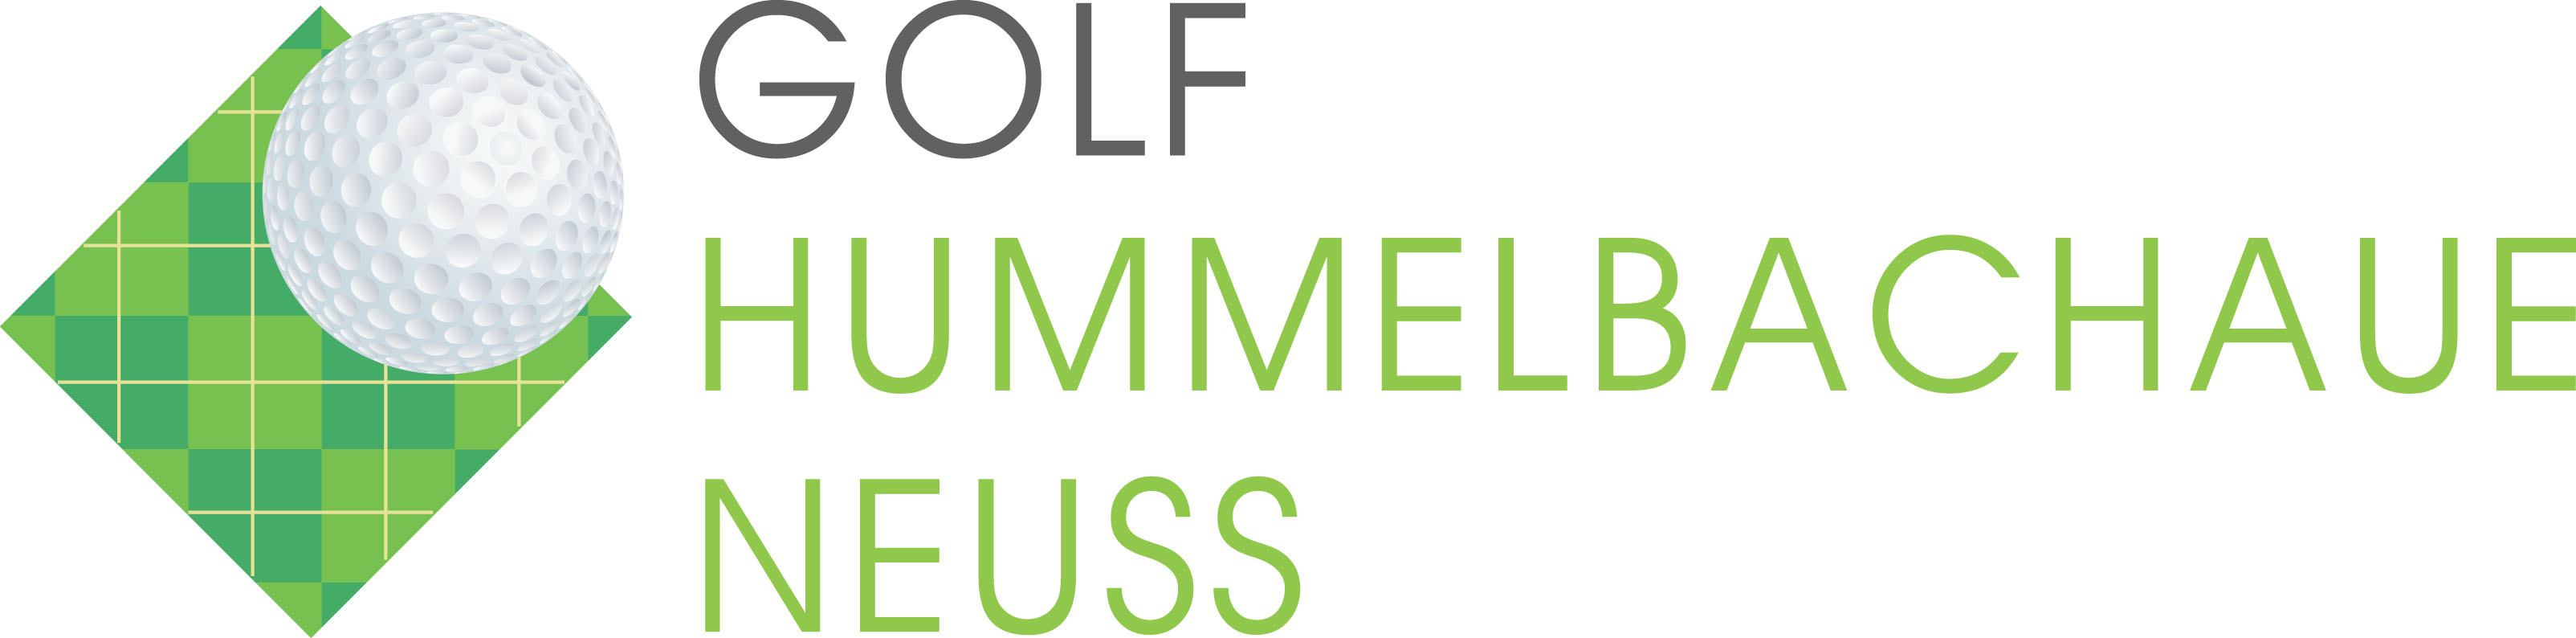 Golf Hummelbachaue